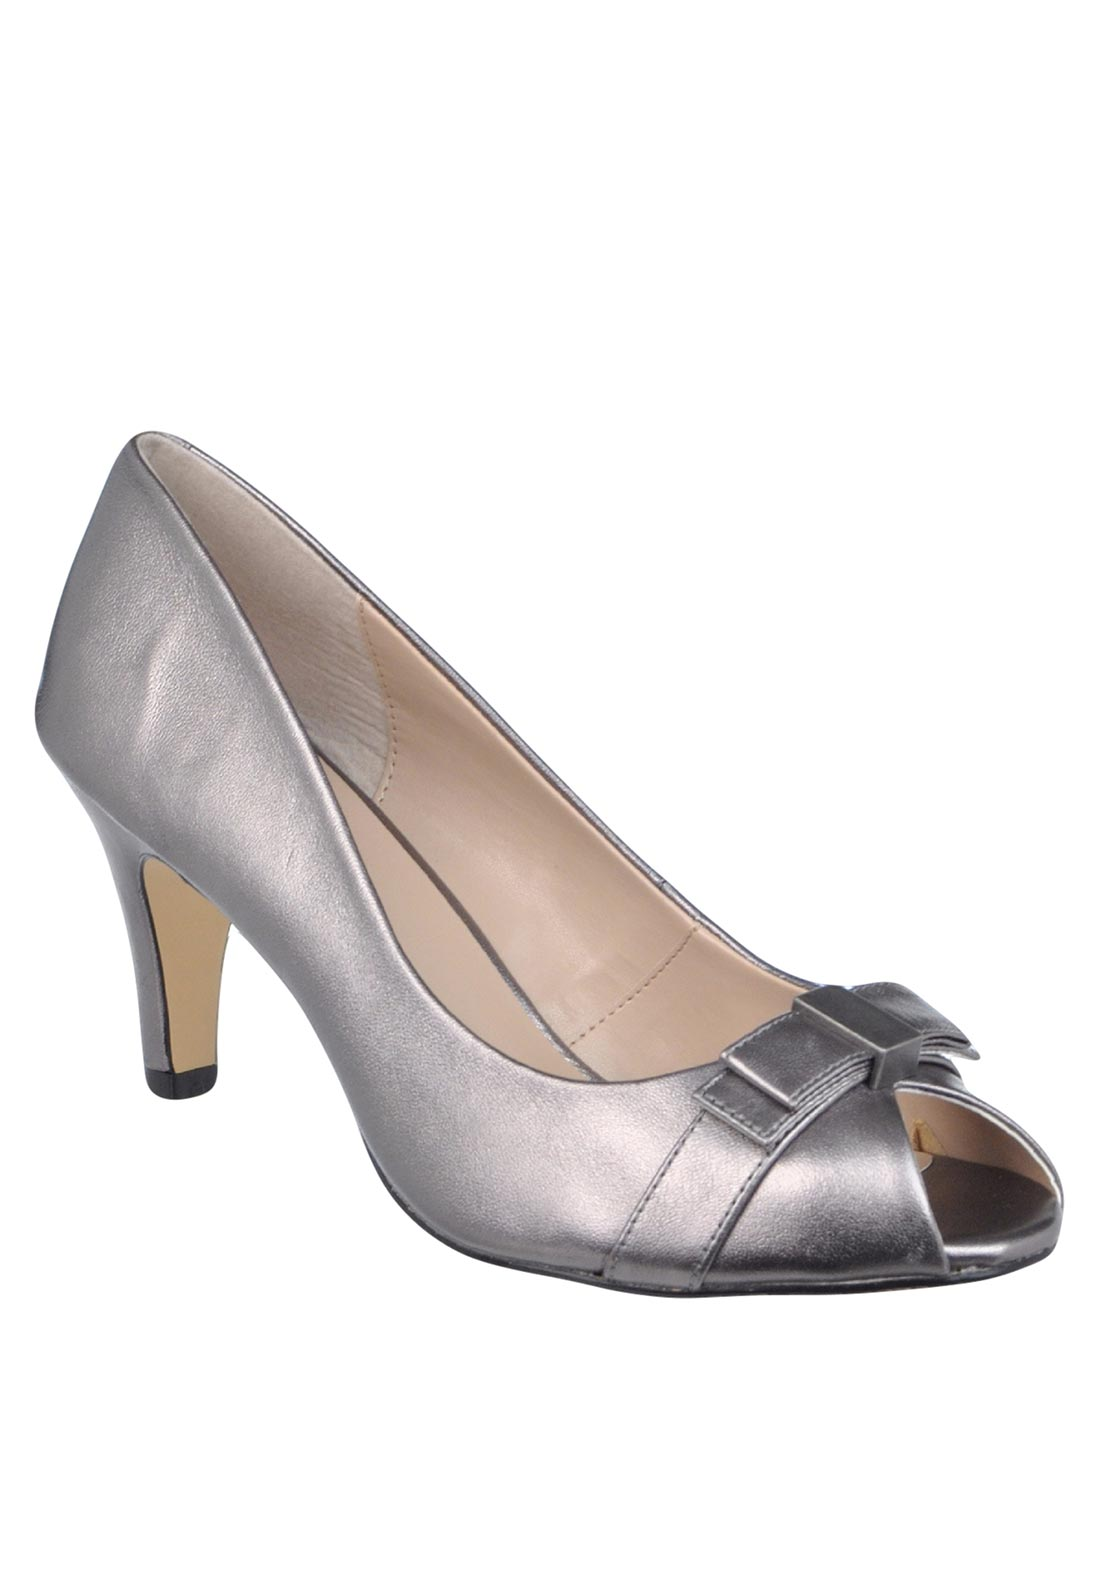 Lotus Leather Peep Toe Bow Heeled Shoes, Pewter